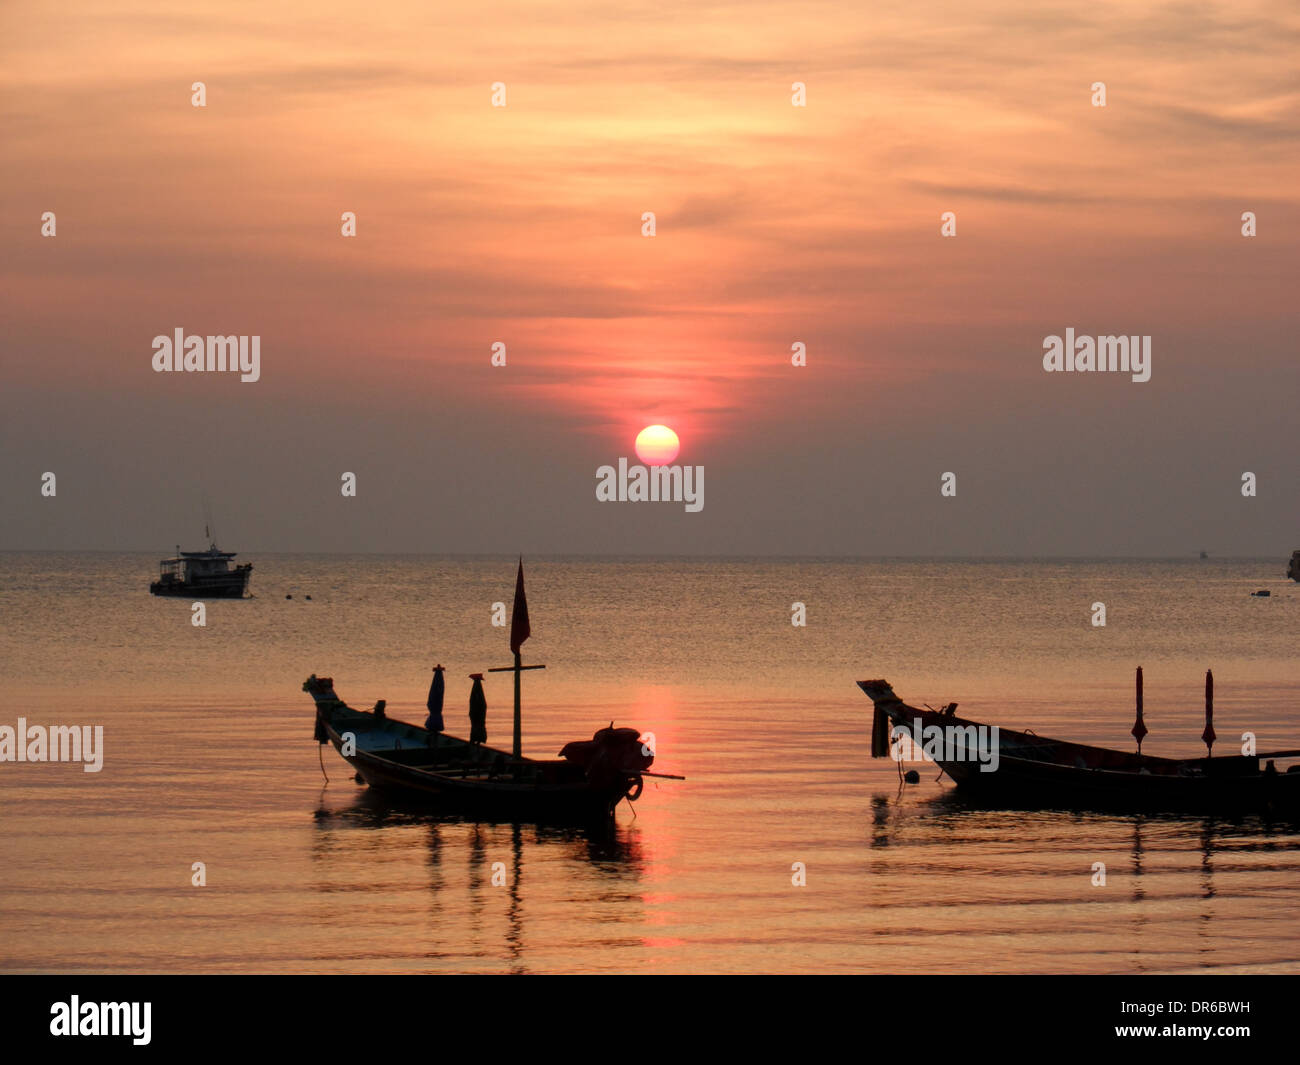 Sunset in Koh Toa, Thailand - Stock Image